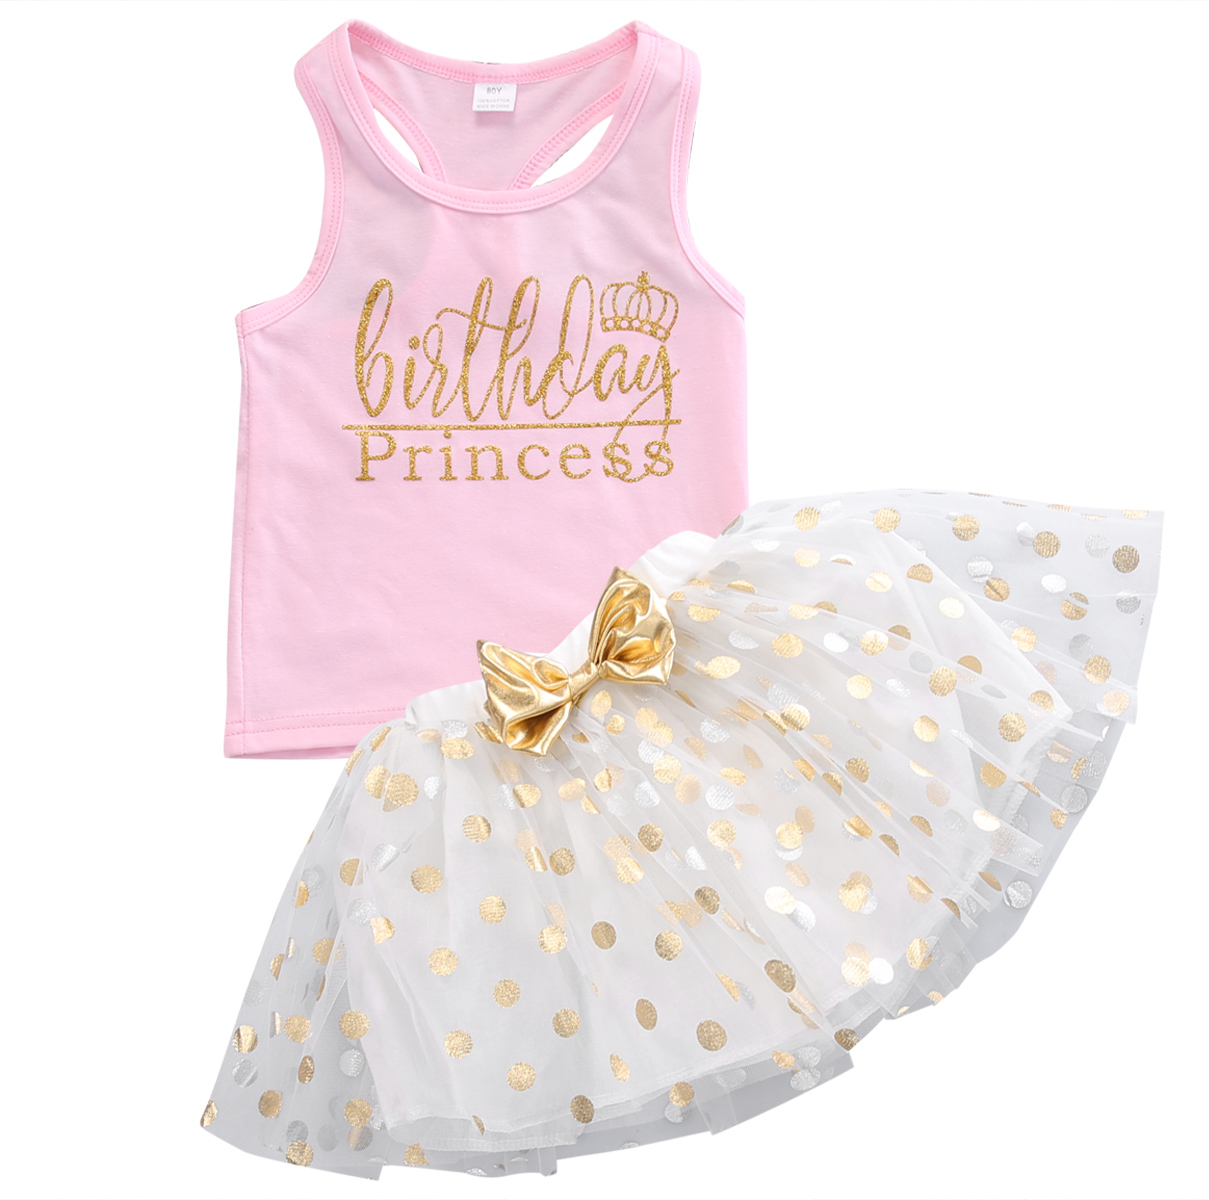 Baby Kids Girls Clothes Summer Sleeveless Vest Top T-shirt +Polka Dot Princess Party tutu Skirt Clothes Set1-6Y puseky vestido princesa 2 pcs set cute kids baby girls clothes minions minnie party dress vest skirt toddler clothes 1 6y